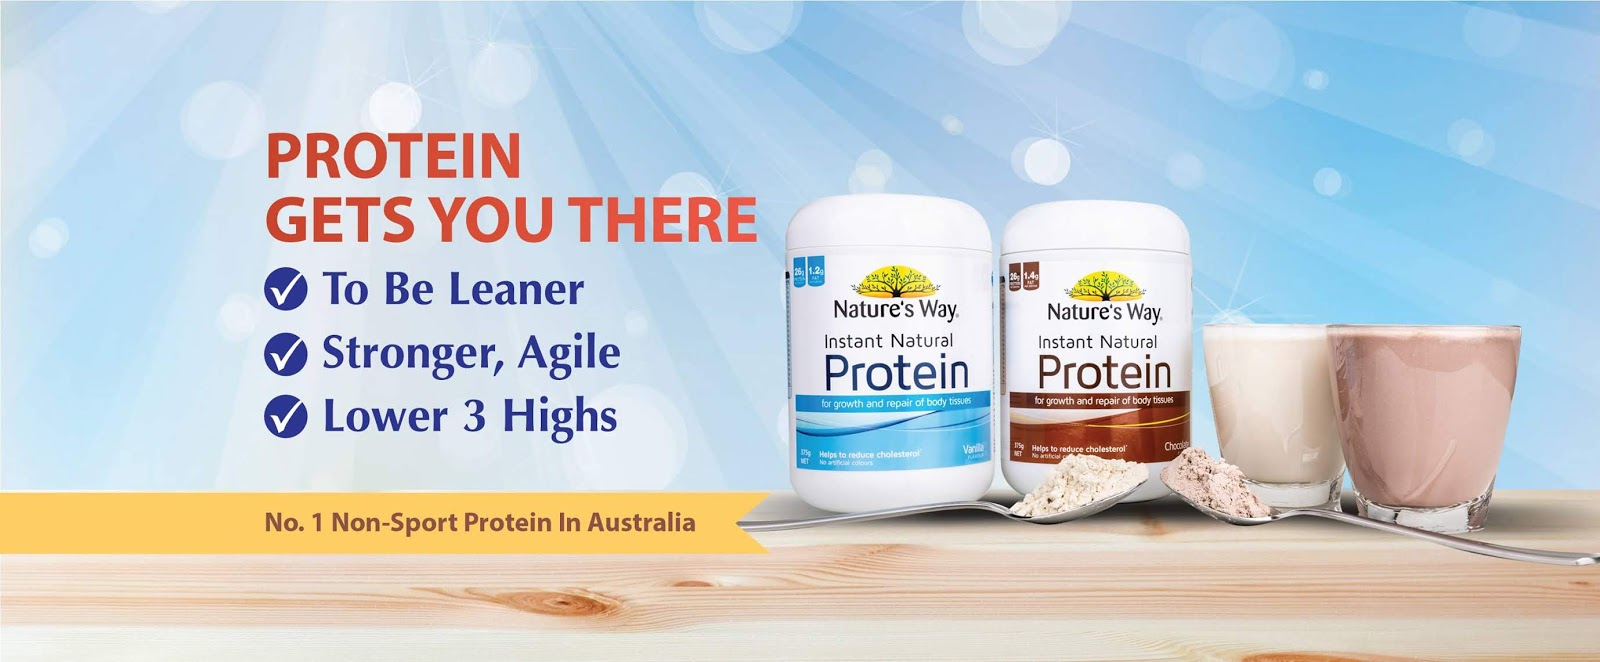 Nature's Way Instant Natural Protein